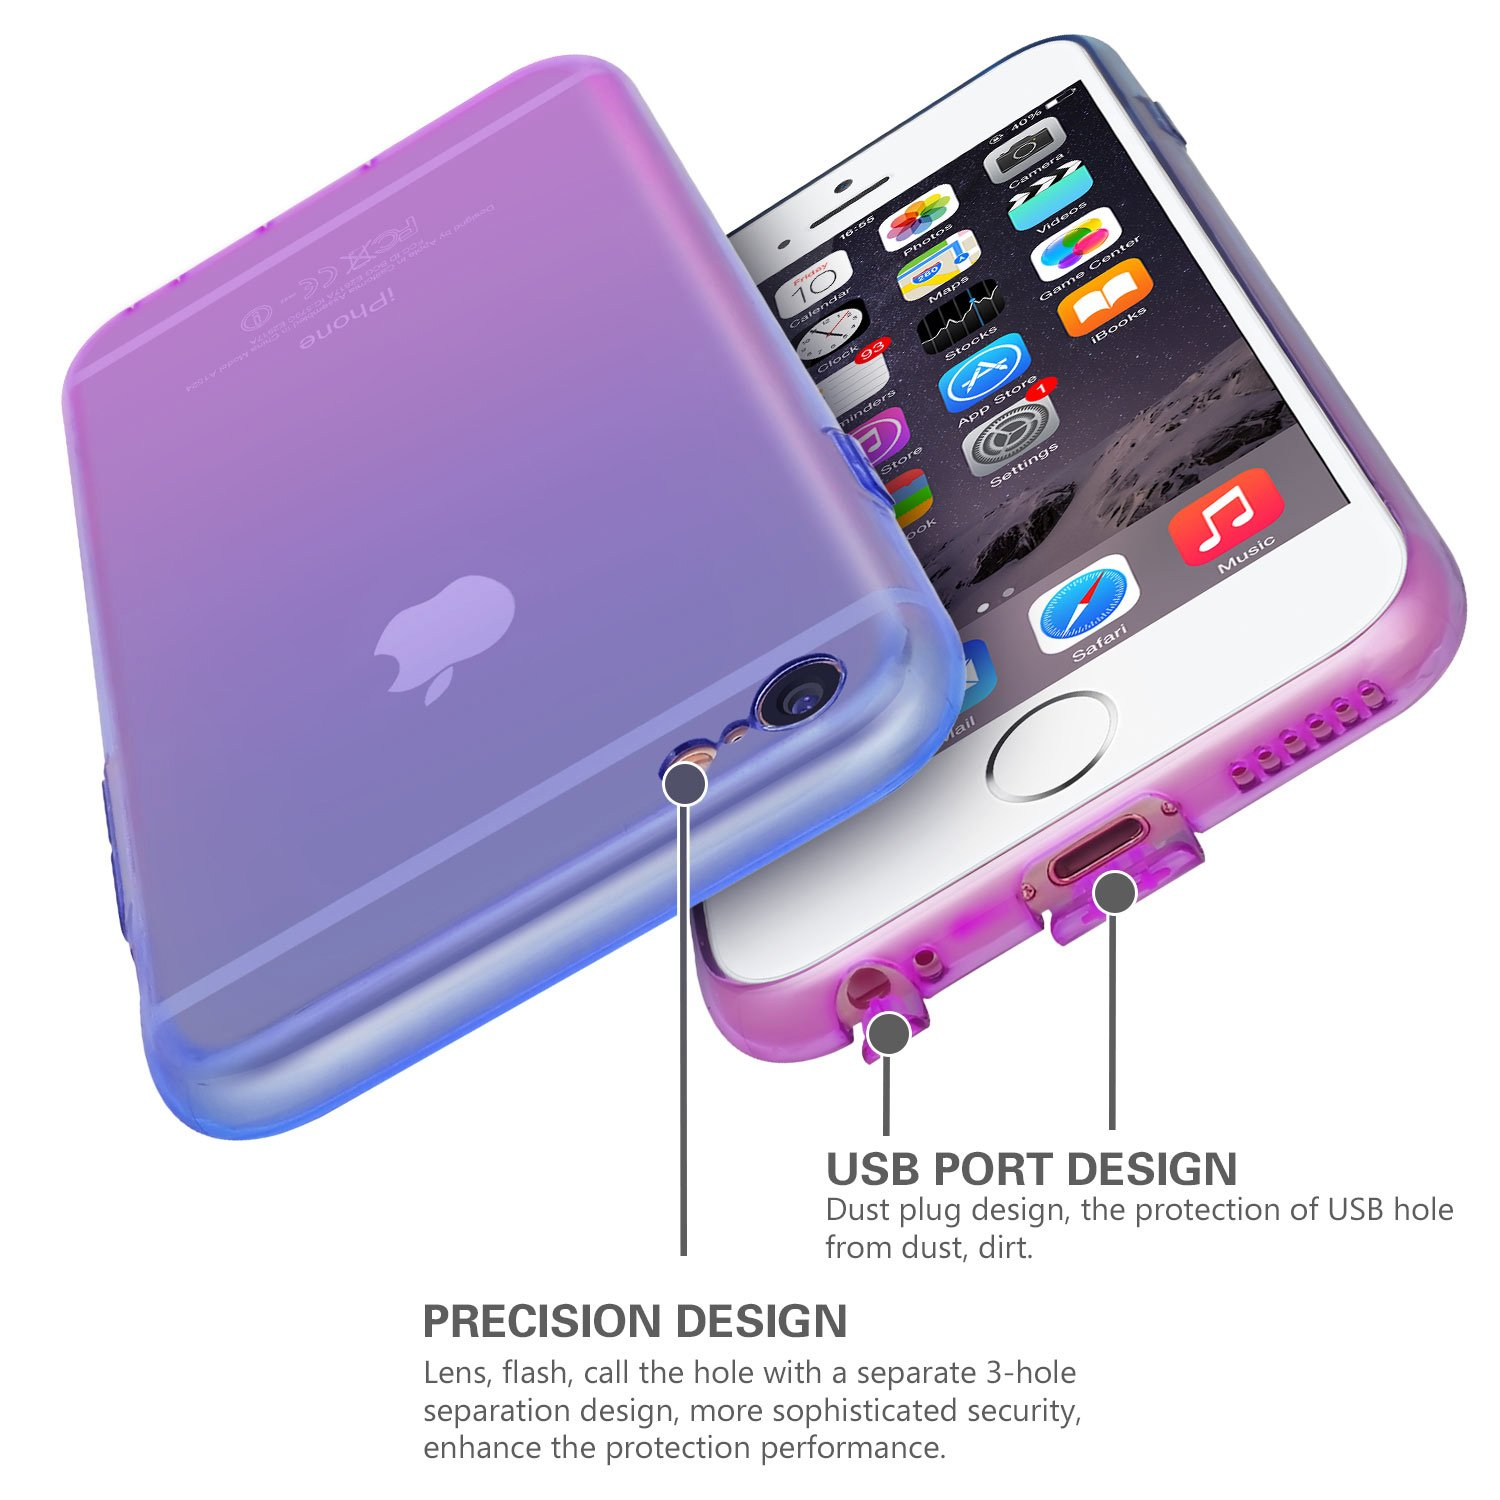 iPhone 6s Case,CLONG iPhone 6S Cover Colorful Clear Shell Slim Case Translucent Impact Resistant Flexible TPU Soft Bumper Case Protective Shell for Apple iPhone 6/6S 4.7 inch(Blue&Purple)